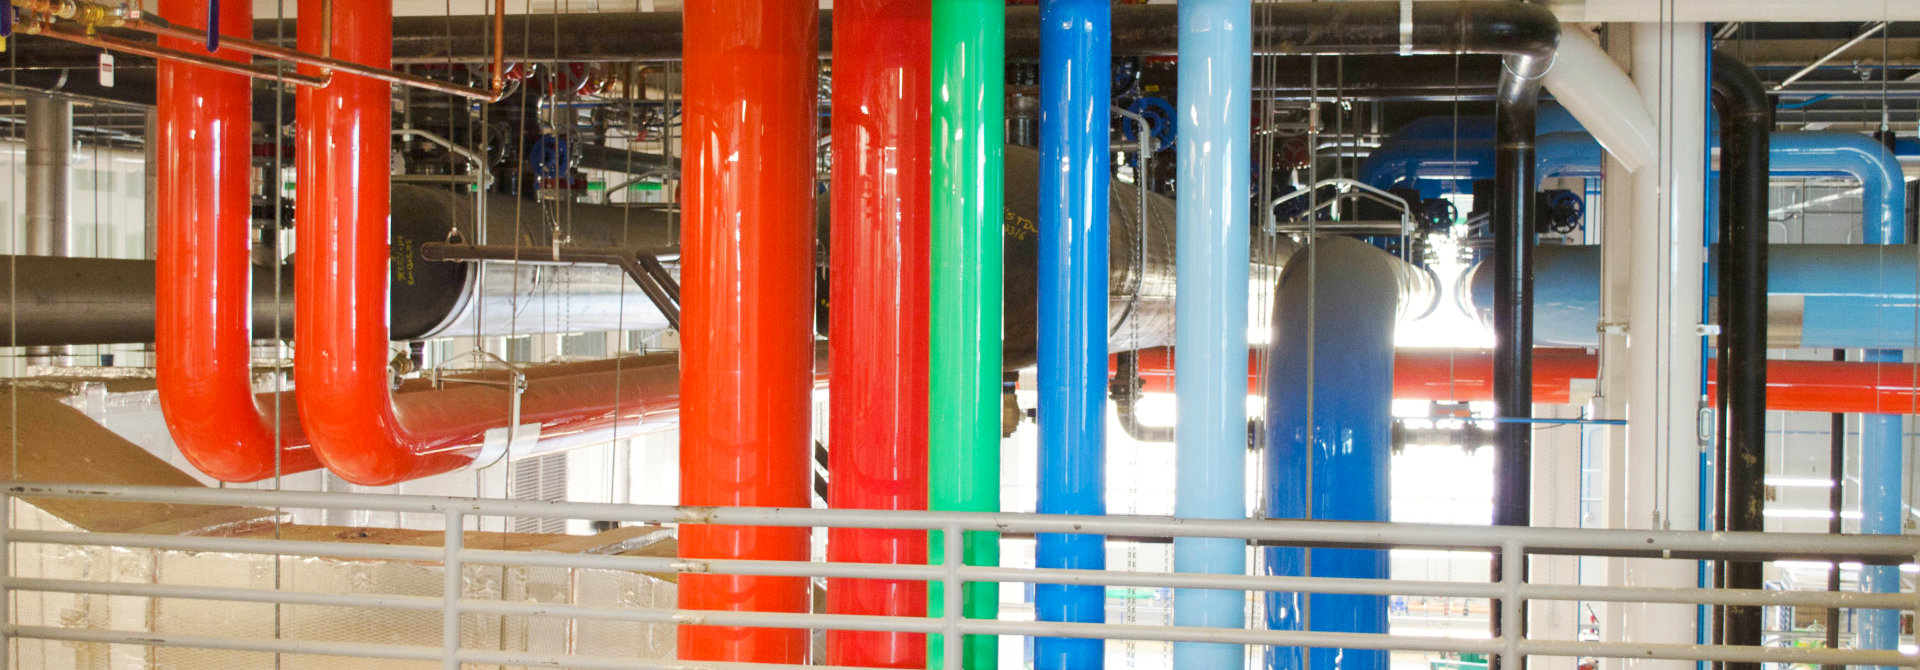 big different color pipes